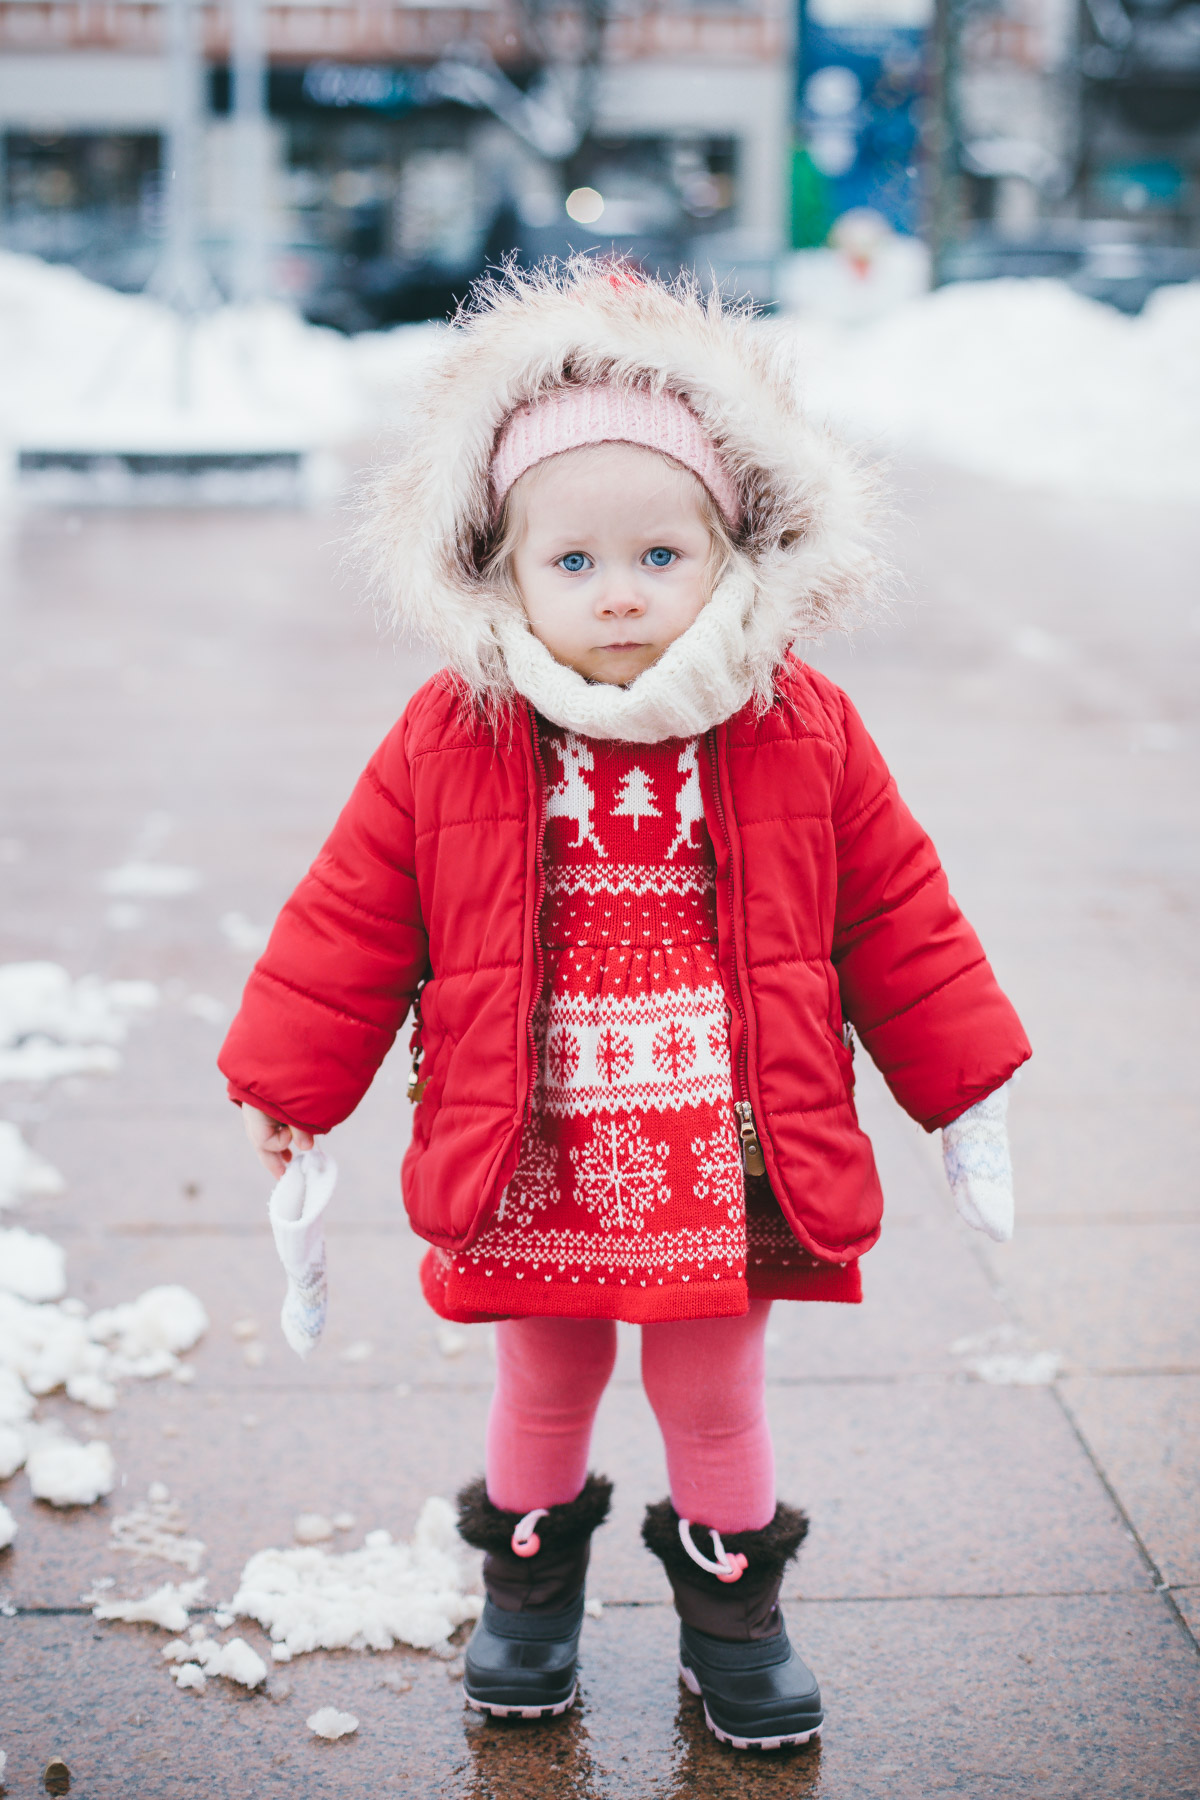 Little Girl in Red Coat Looking at the Camera